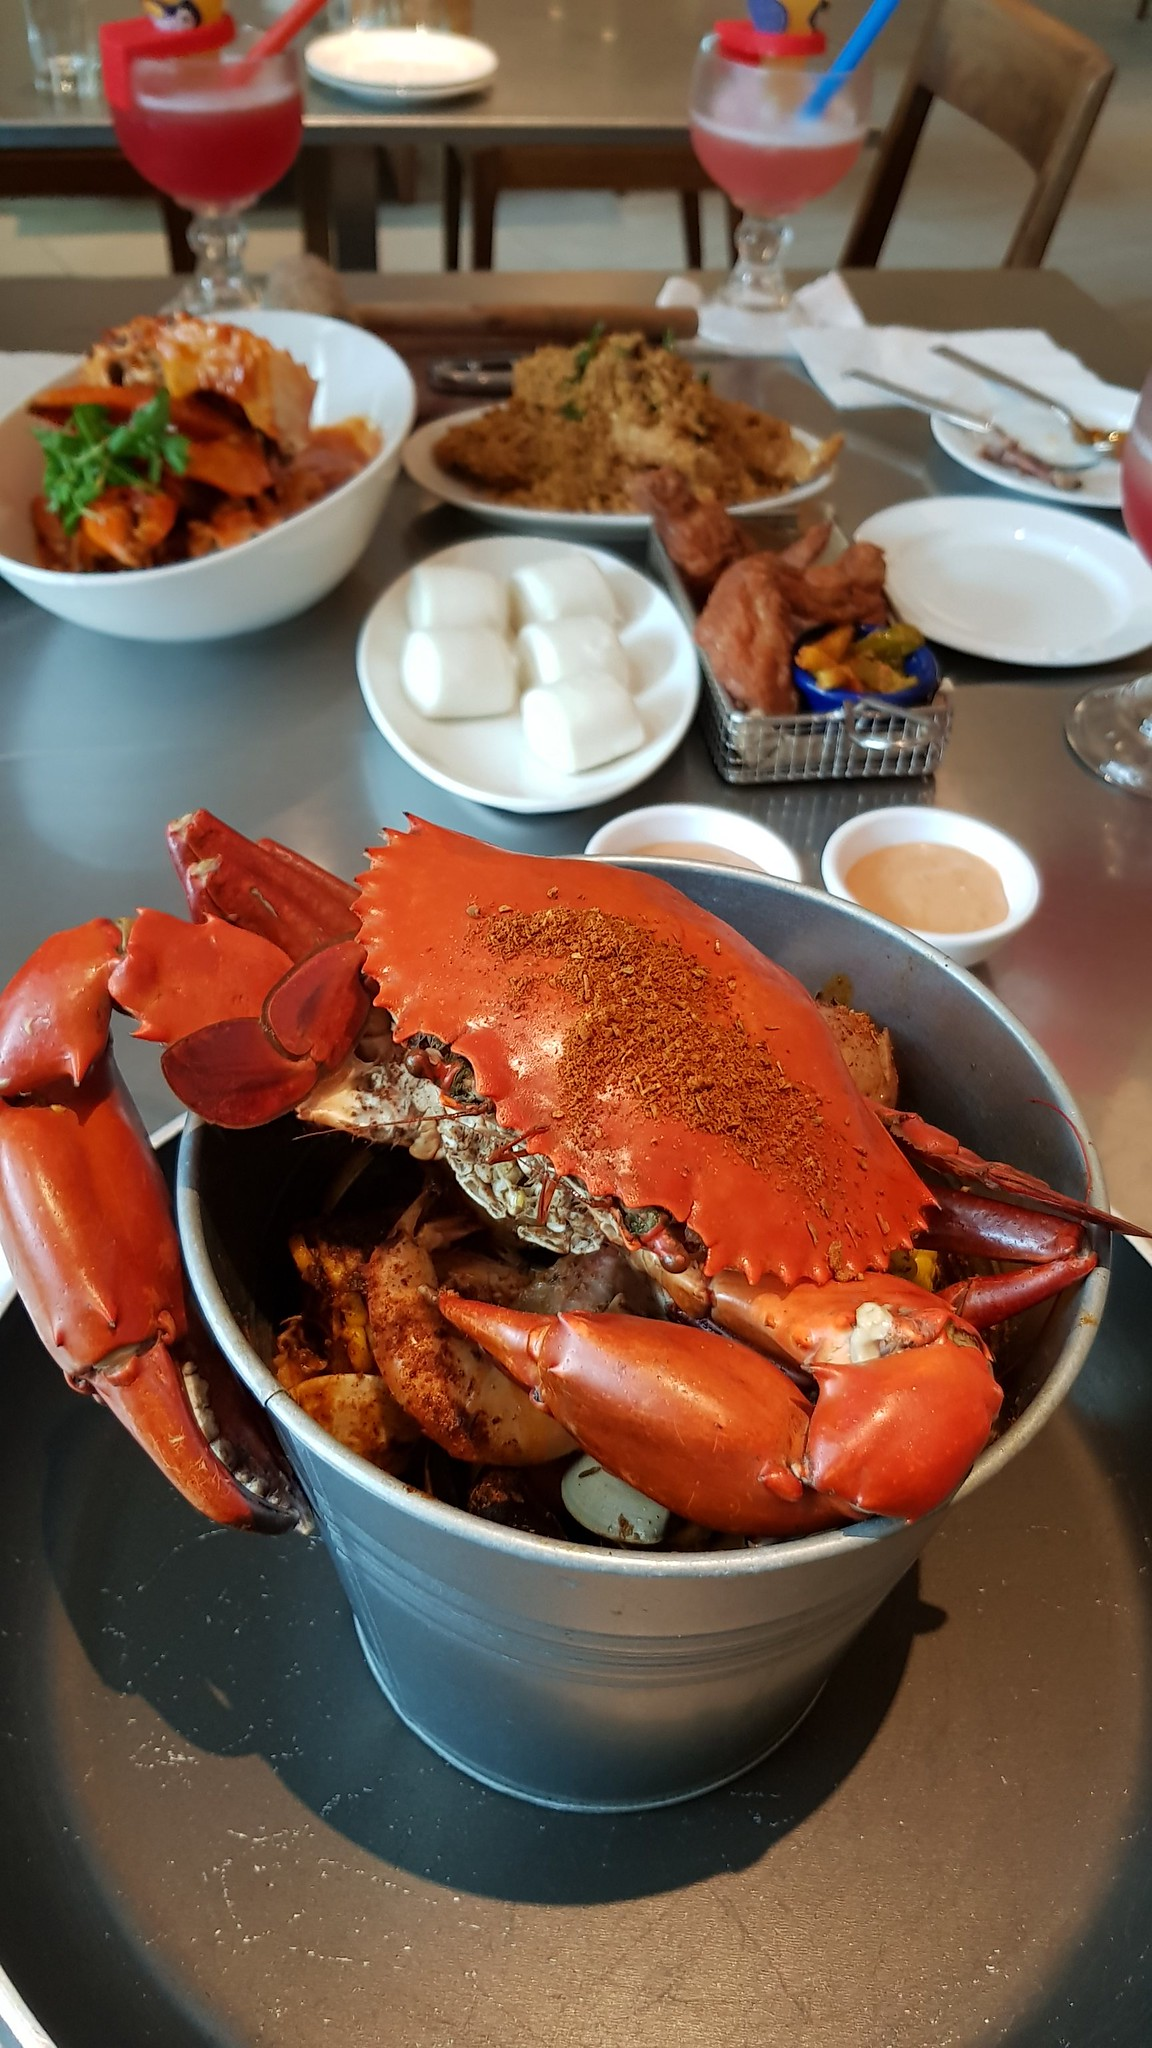 3. Baked Seafood